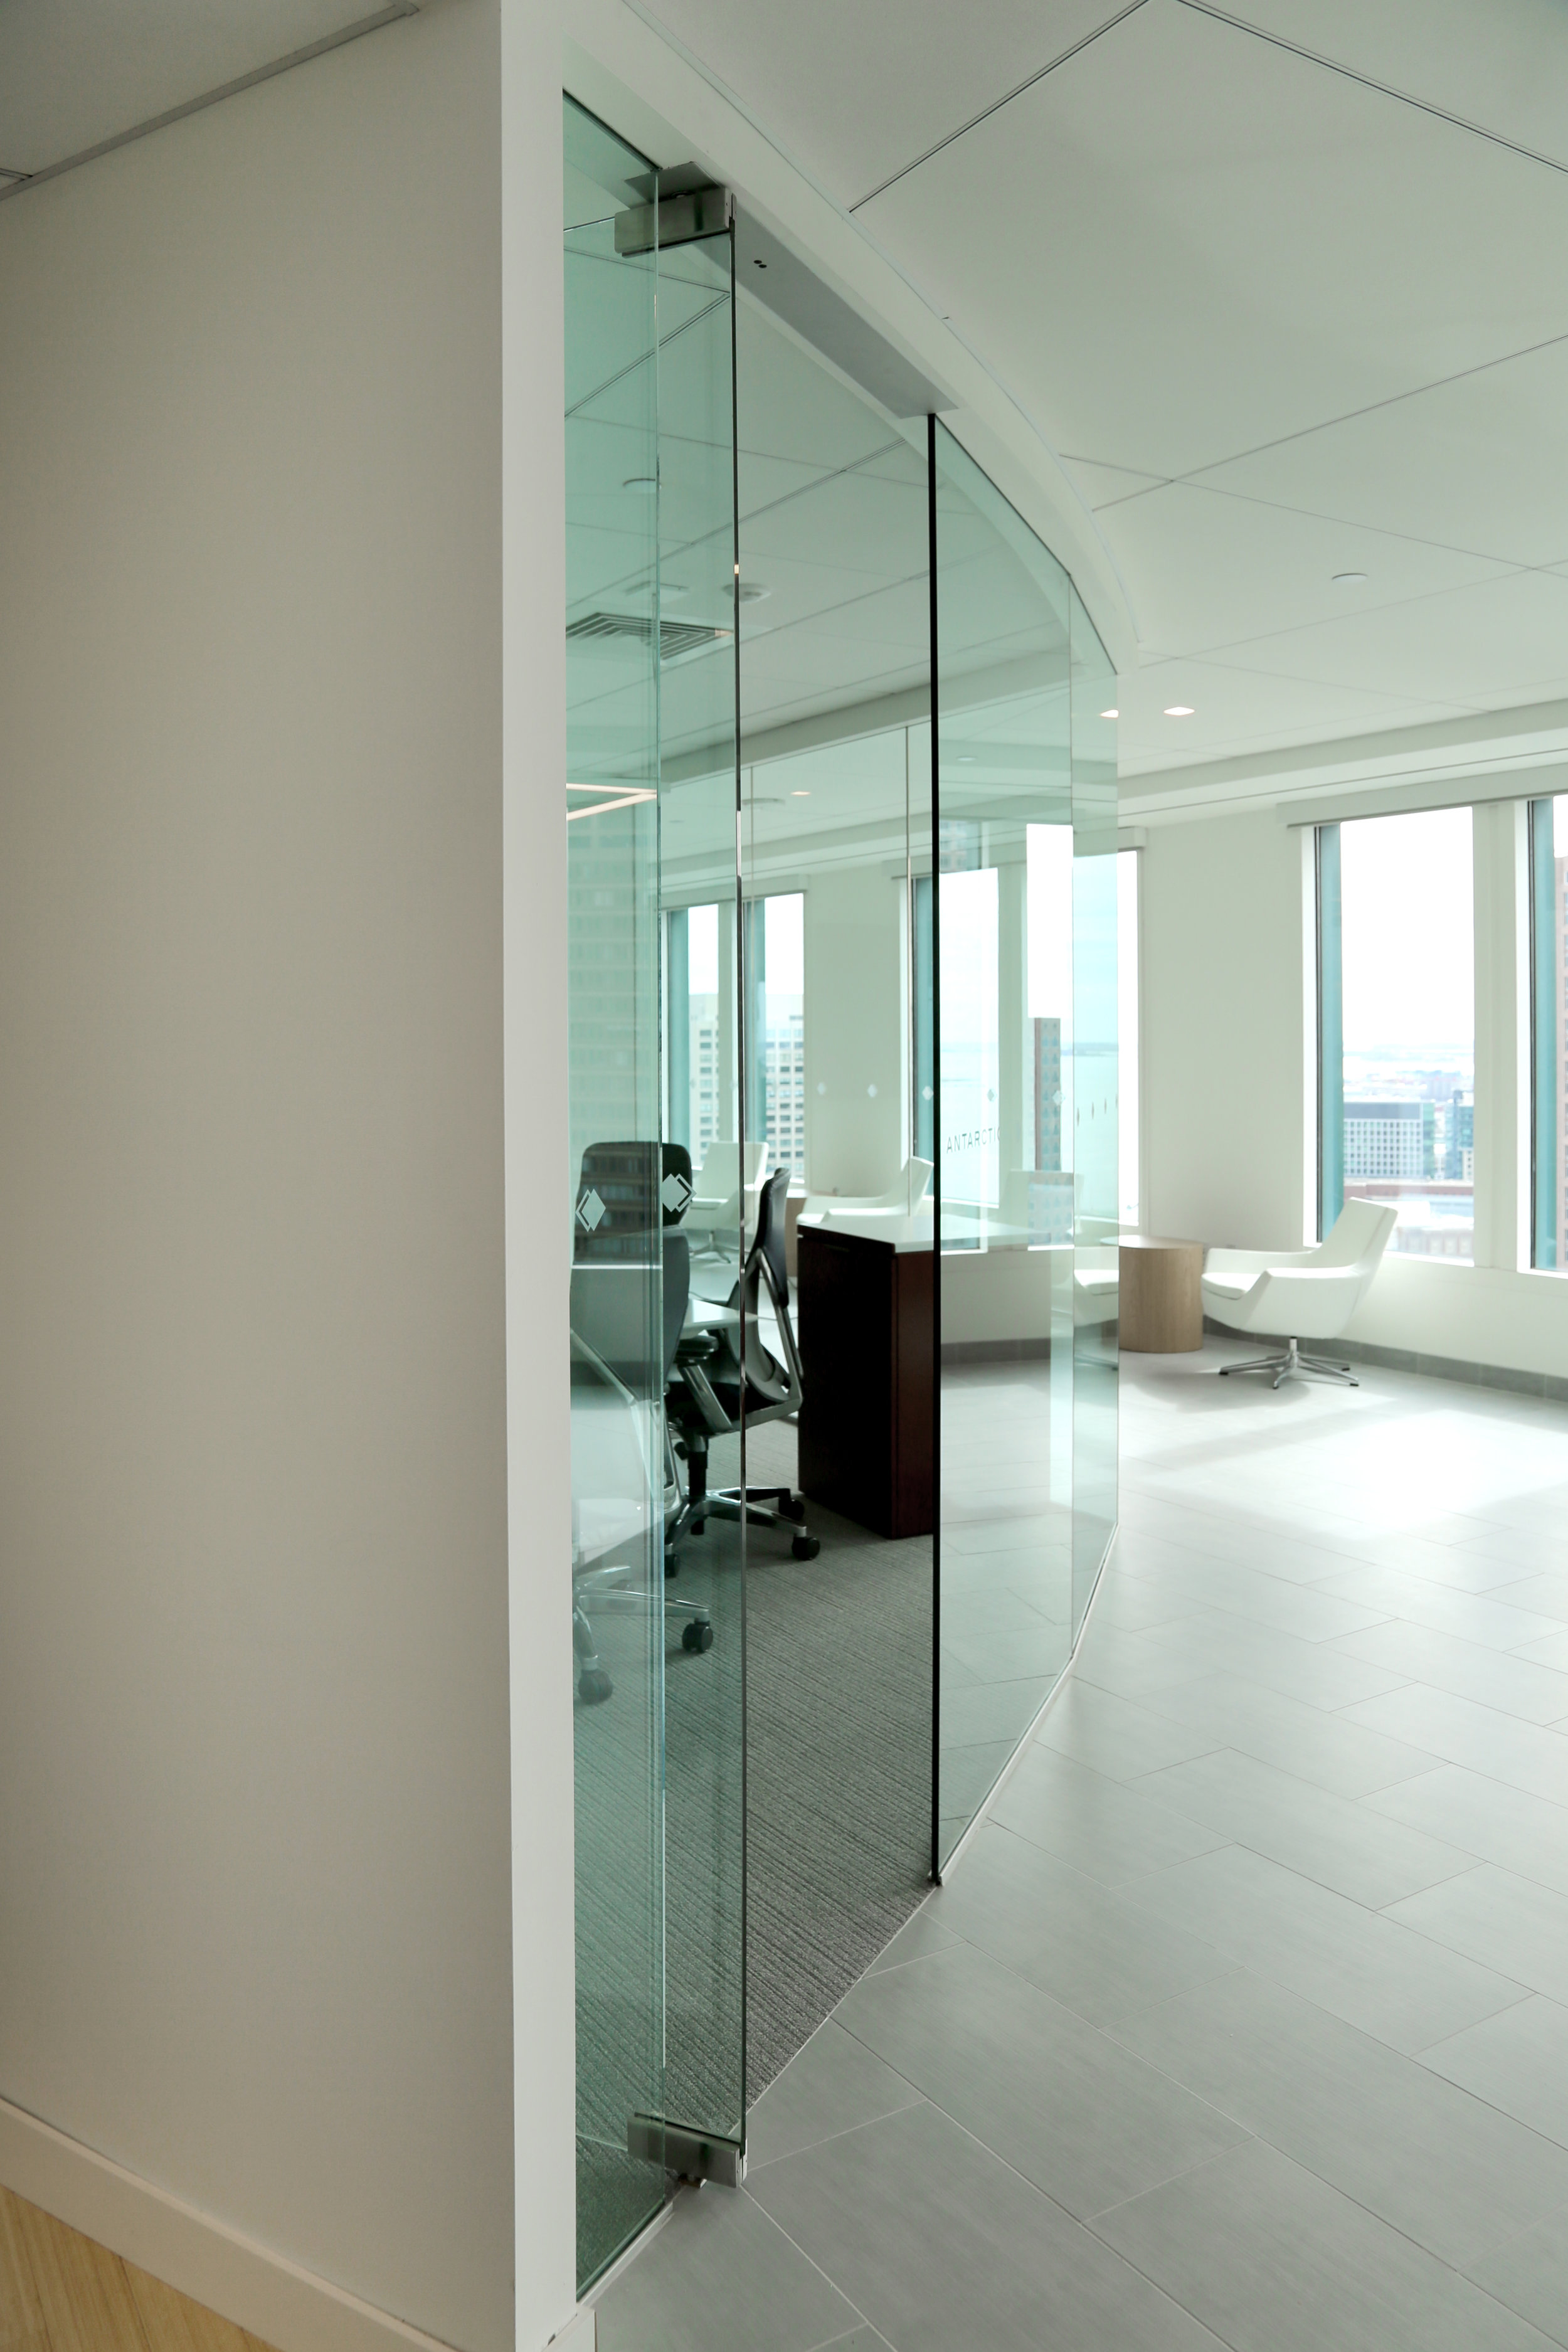 Framless Glass Faceted Wall System Butt-Glazed  - Spaceworks AI.jpg